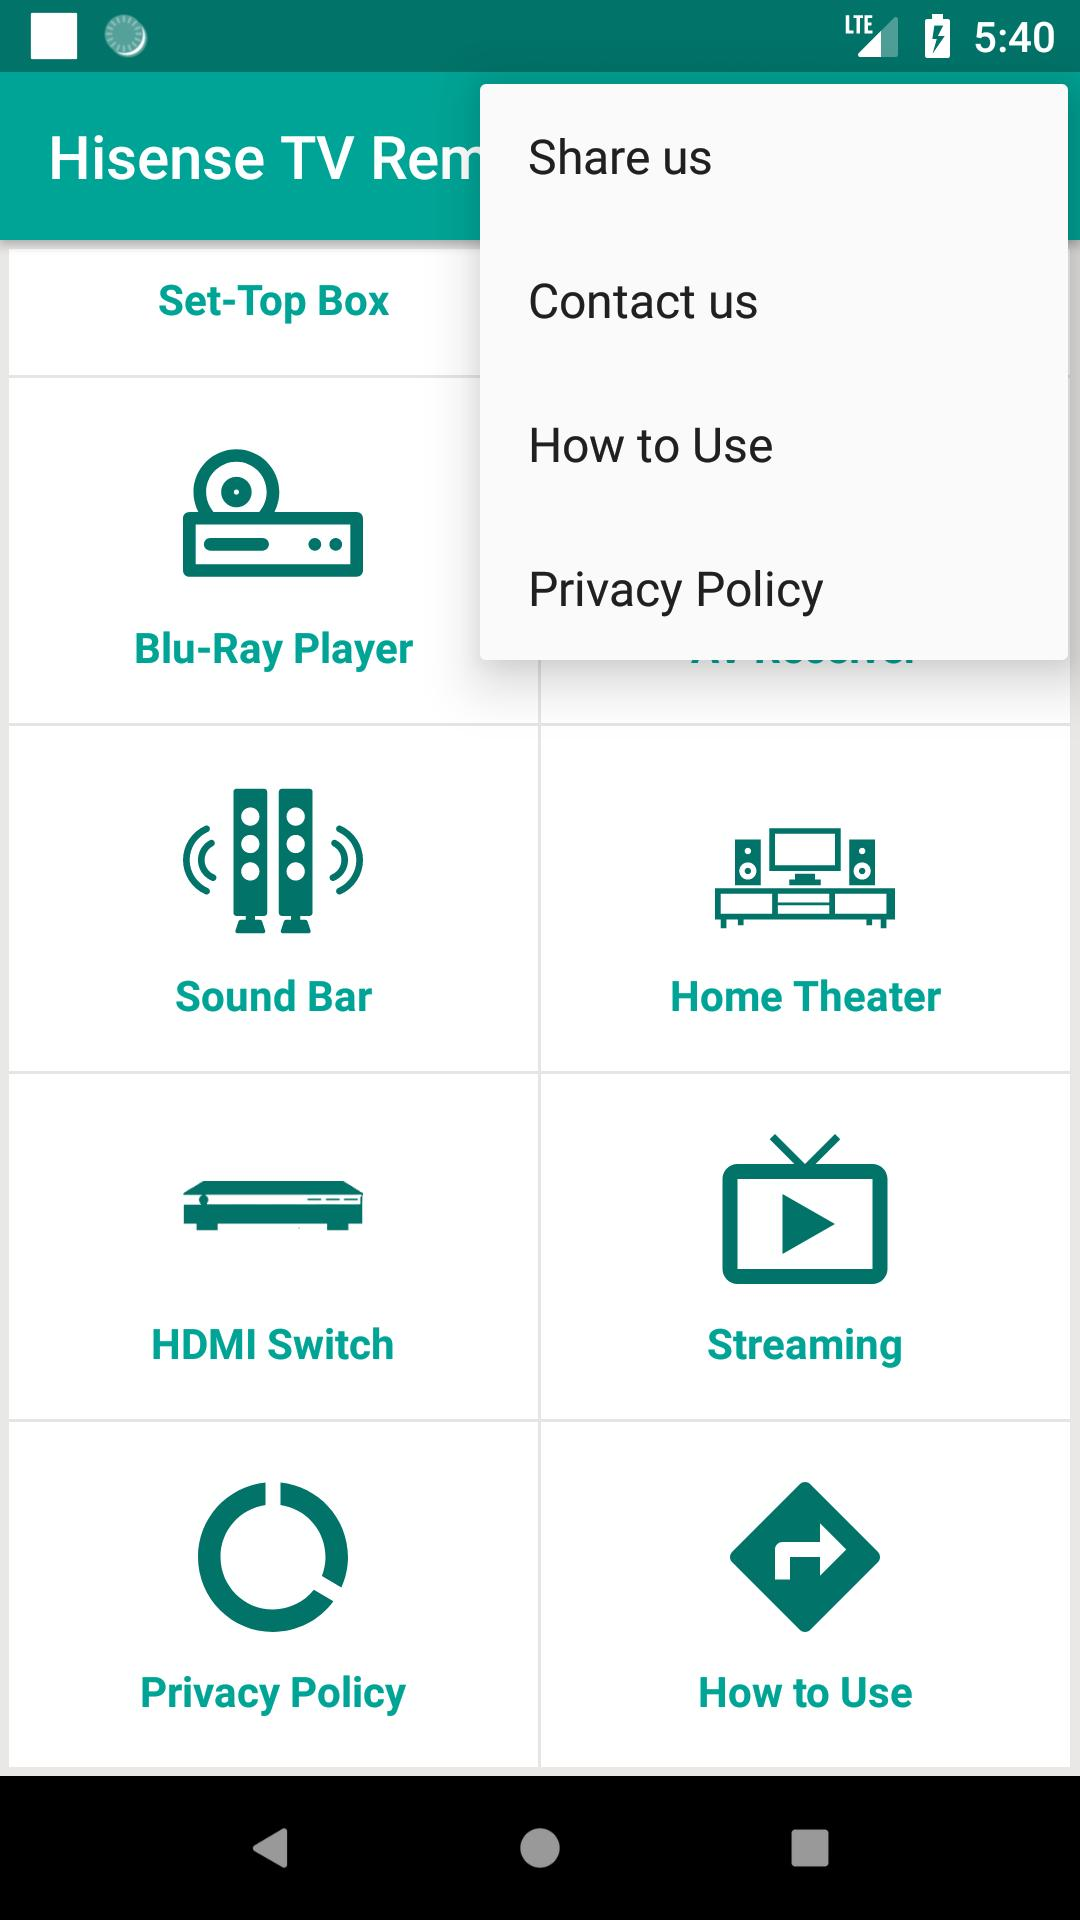 Hisense TV Remote Control App for Android - APK Download